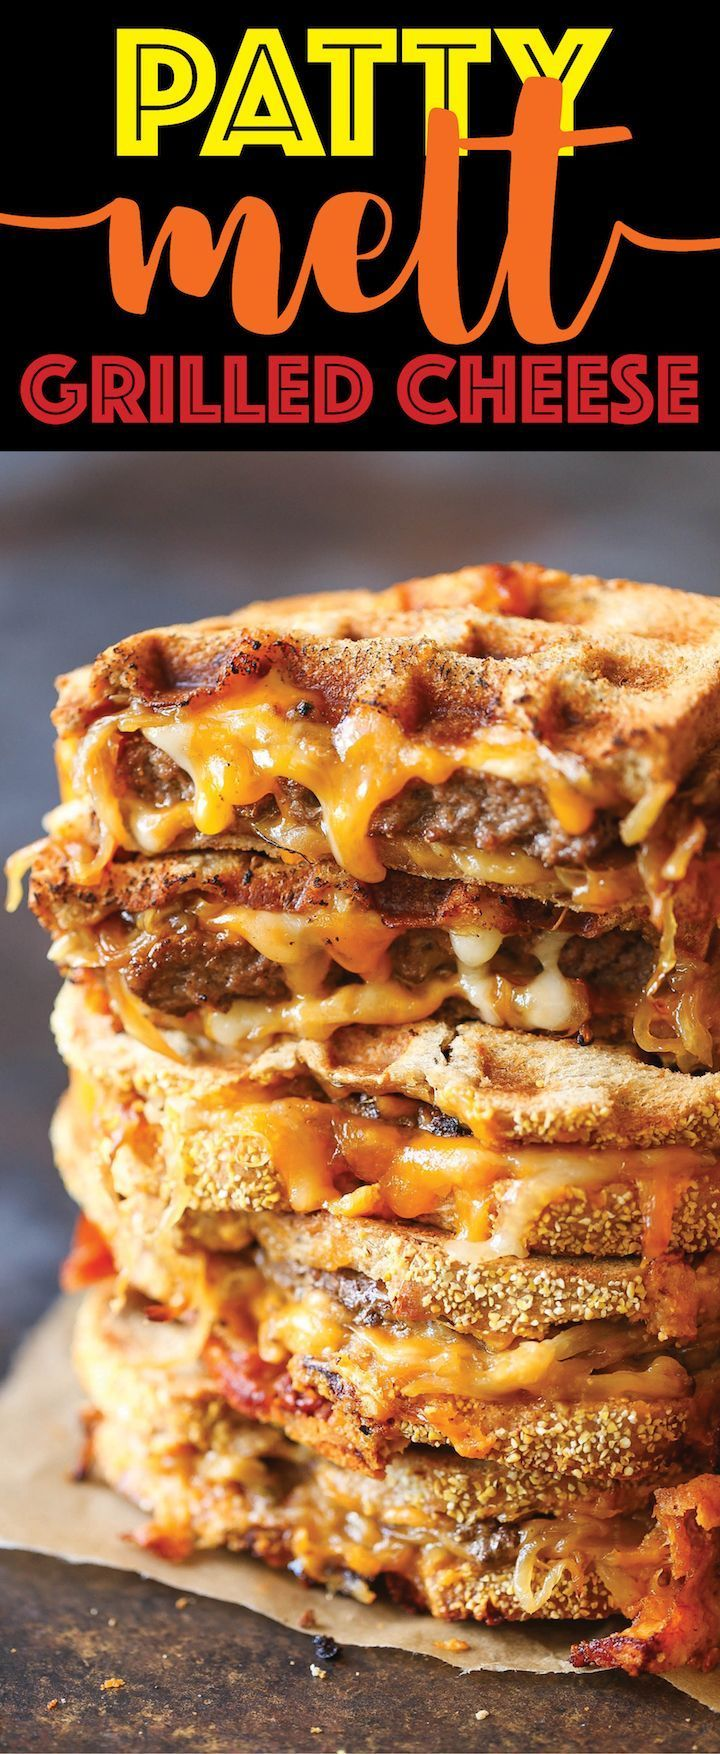 Patty Melt Grilled Cheese - A classic American diner sandwich, with melted cheesy goodness, a juicy patty and caramelized onions - made in a waffle maker!!!